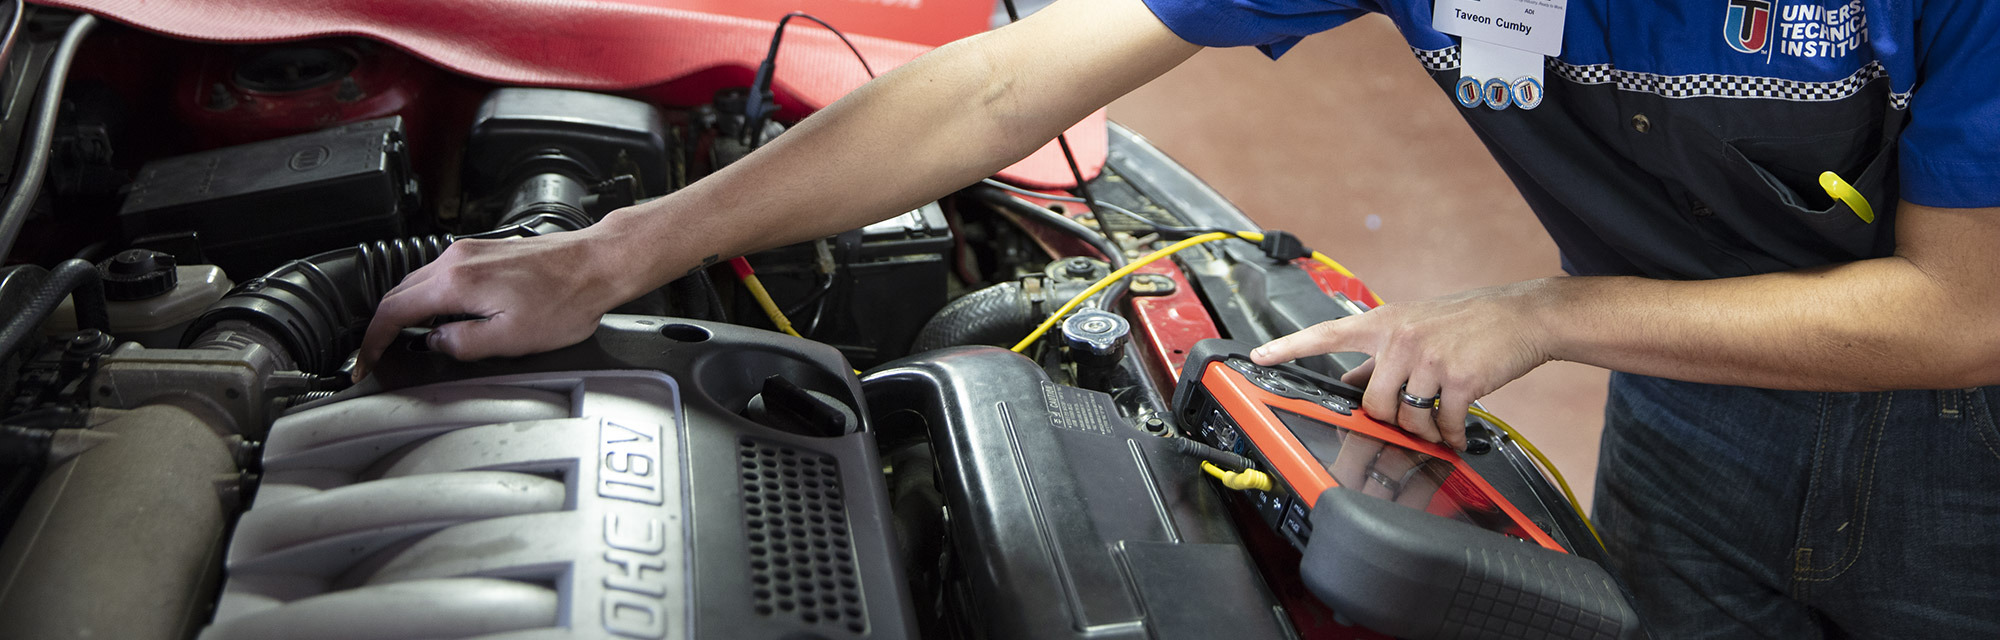 Student using diagnostic tool to test vehicle